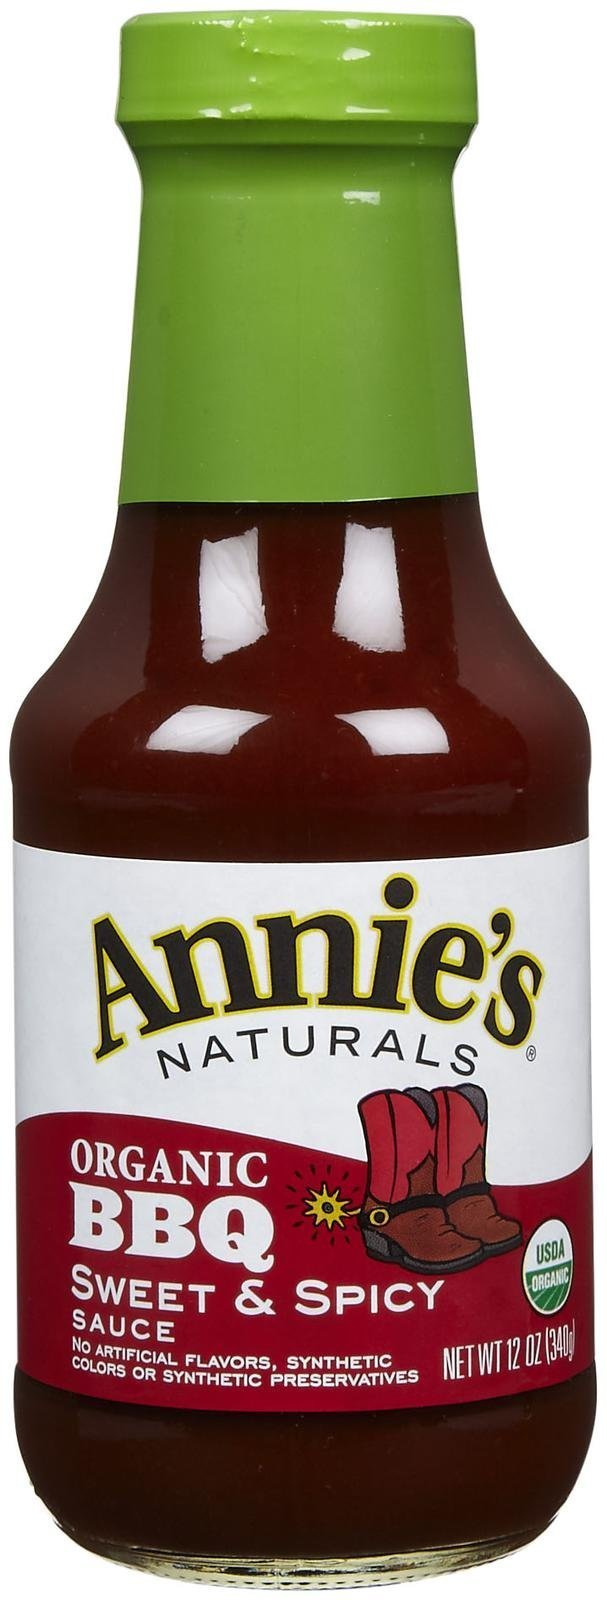 Annie's Naturals Sweet And Spicy BBQ Sauce - 12 Ounces